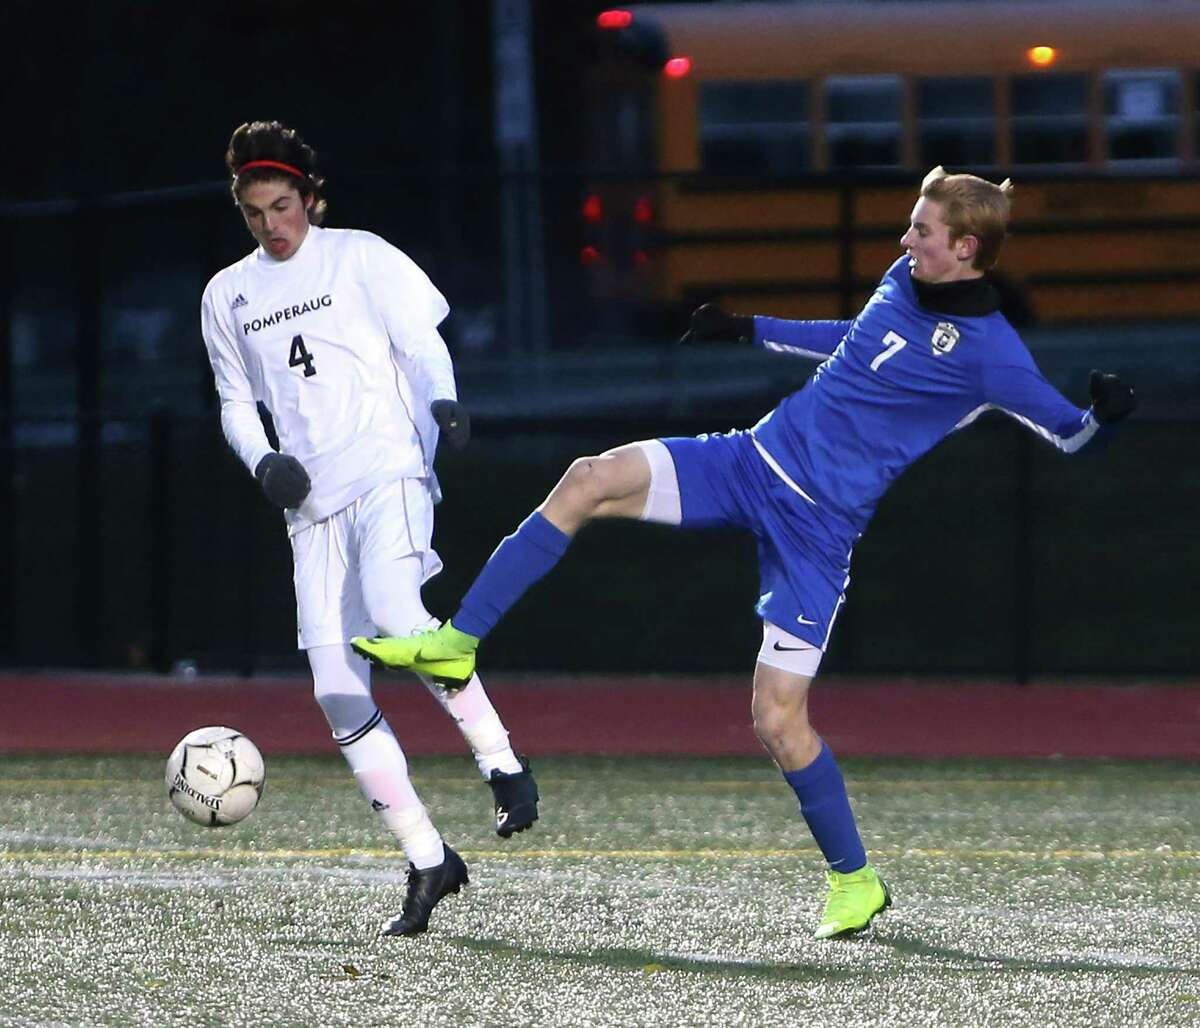 Glastonbury High School's Alec Hughes battles Pomperaug High School's Harrison McQuillan for the ball during the Class LL boys soccer semifinals in New Britain on Wednesday, Nov. 14, 2018.